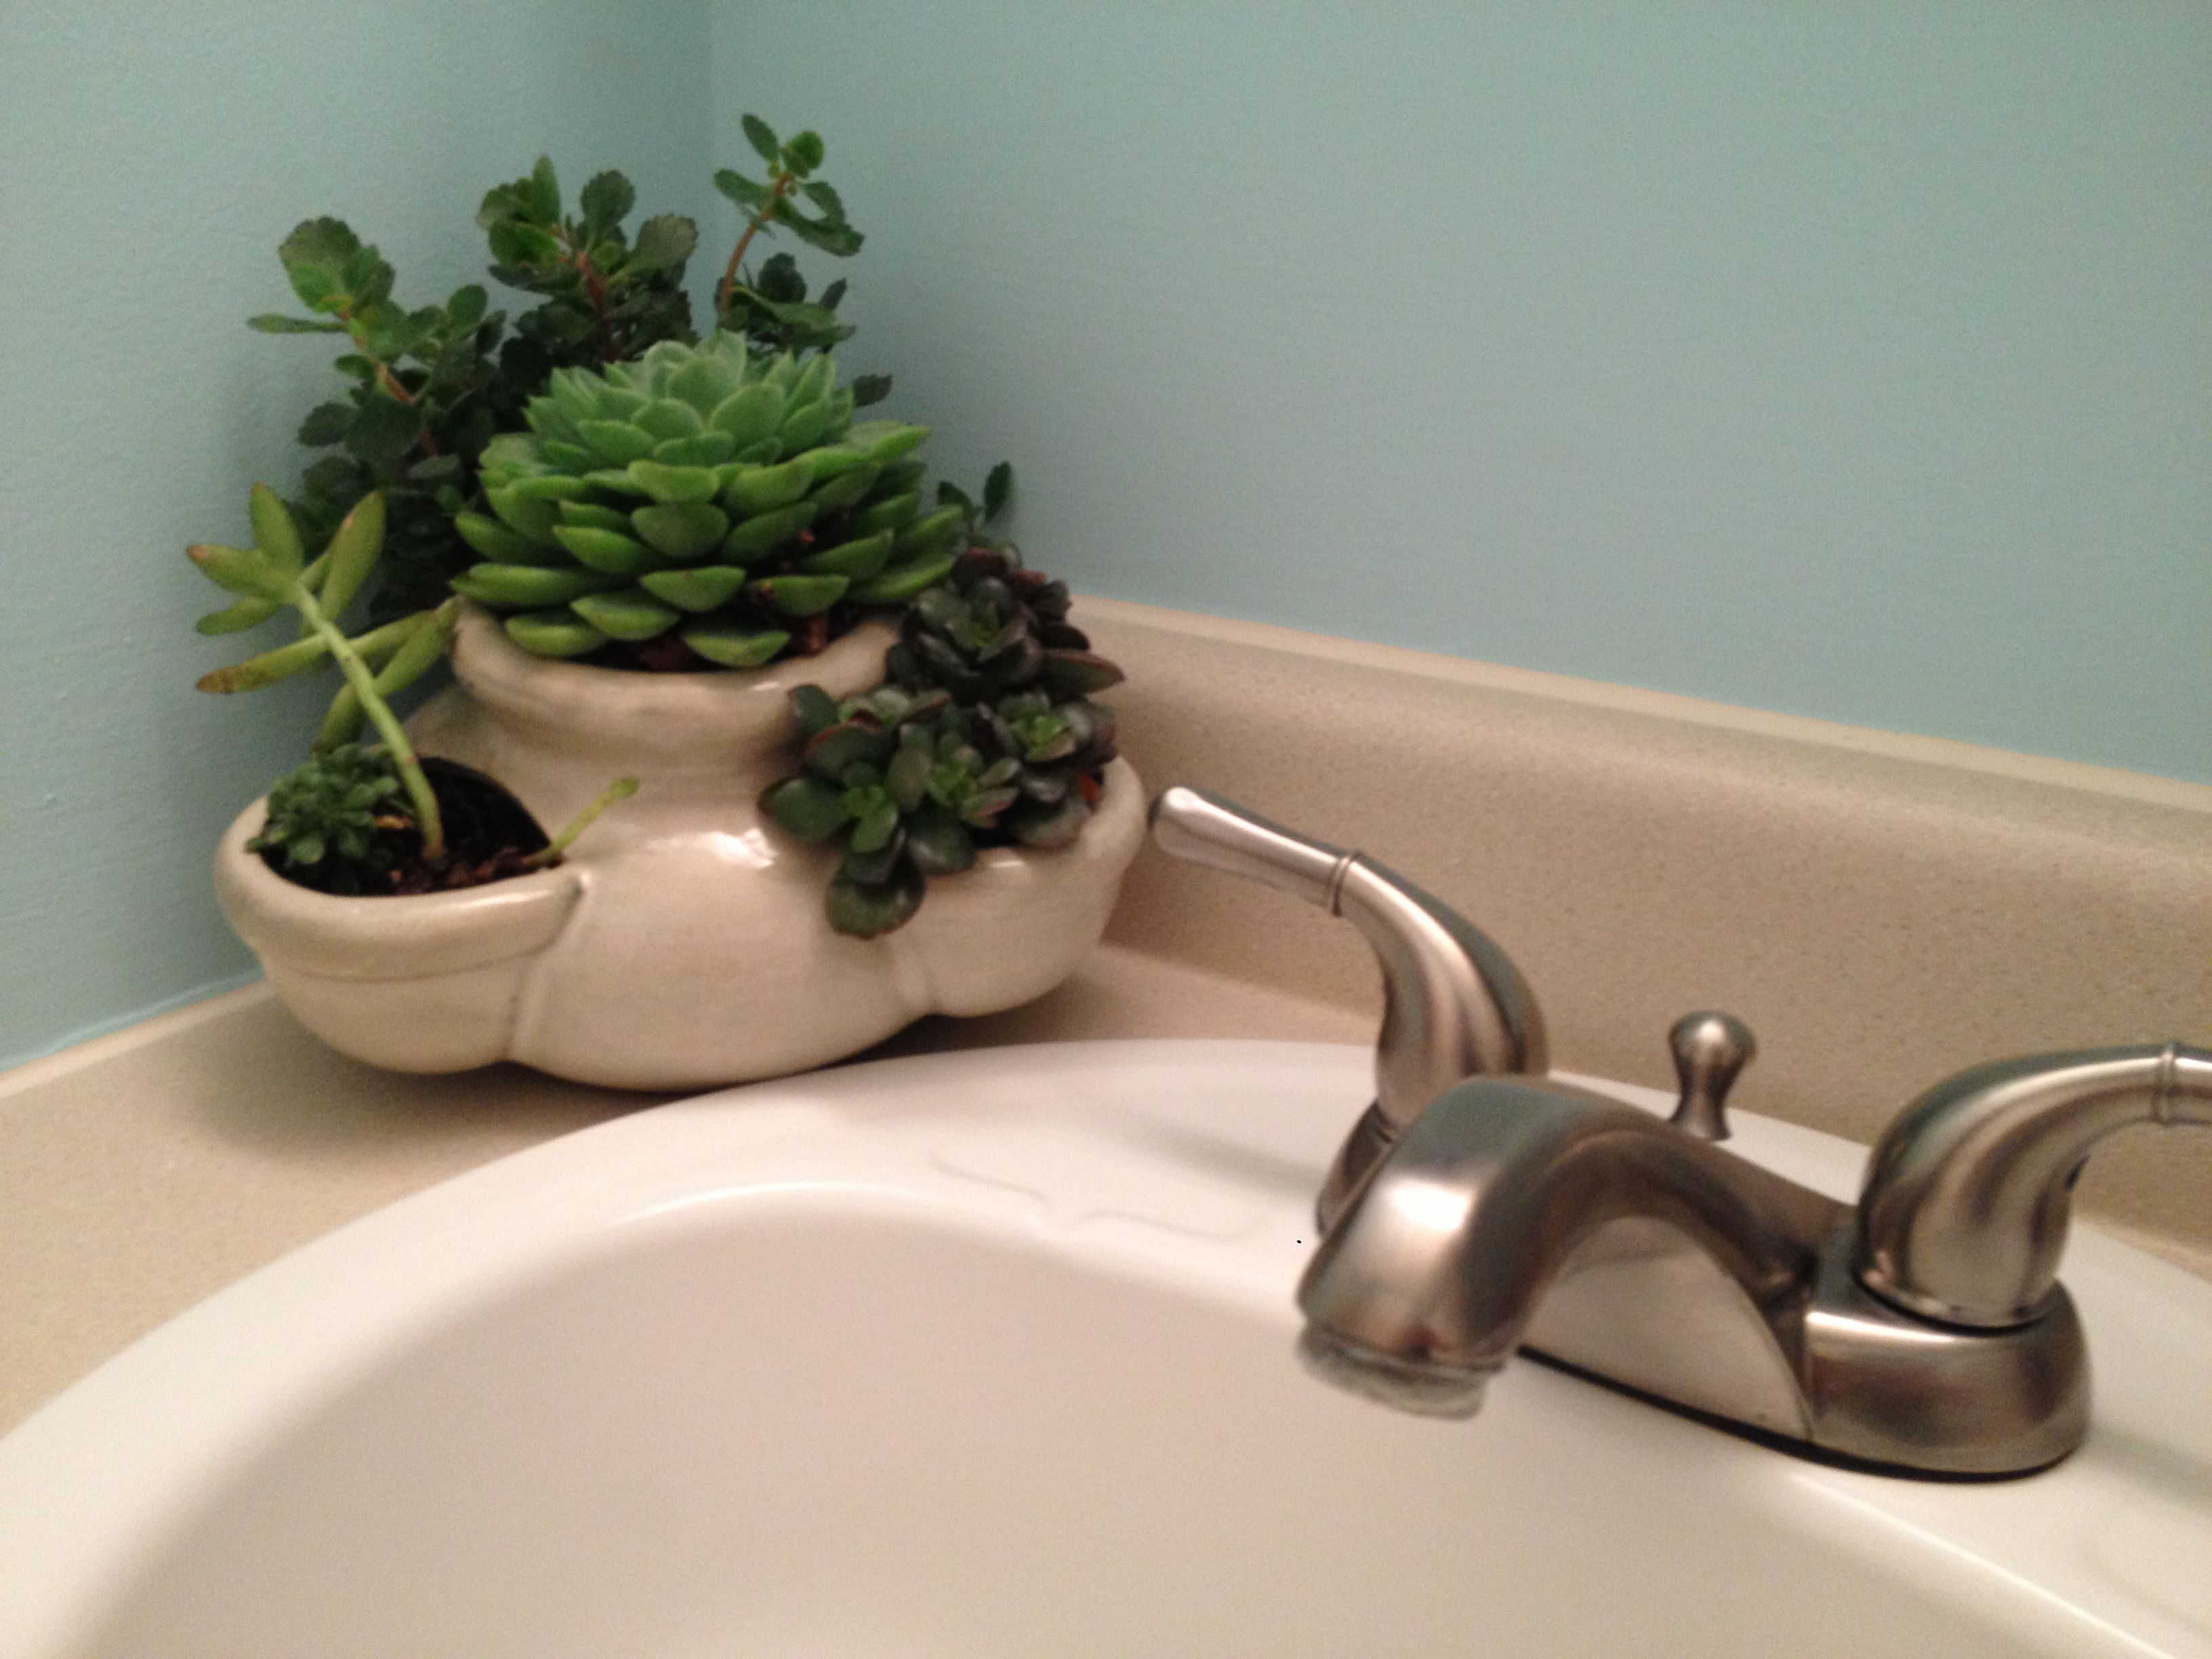 Bathroom Succulents Bathroom Plants Indoor Plants Bathroom Indoor Plants Bedroom